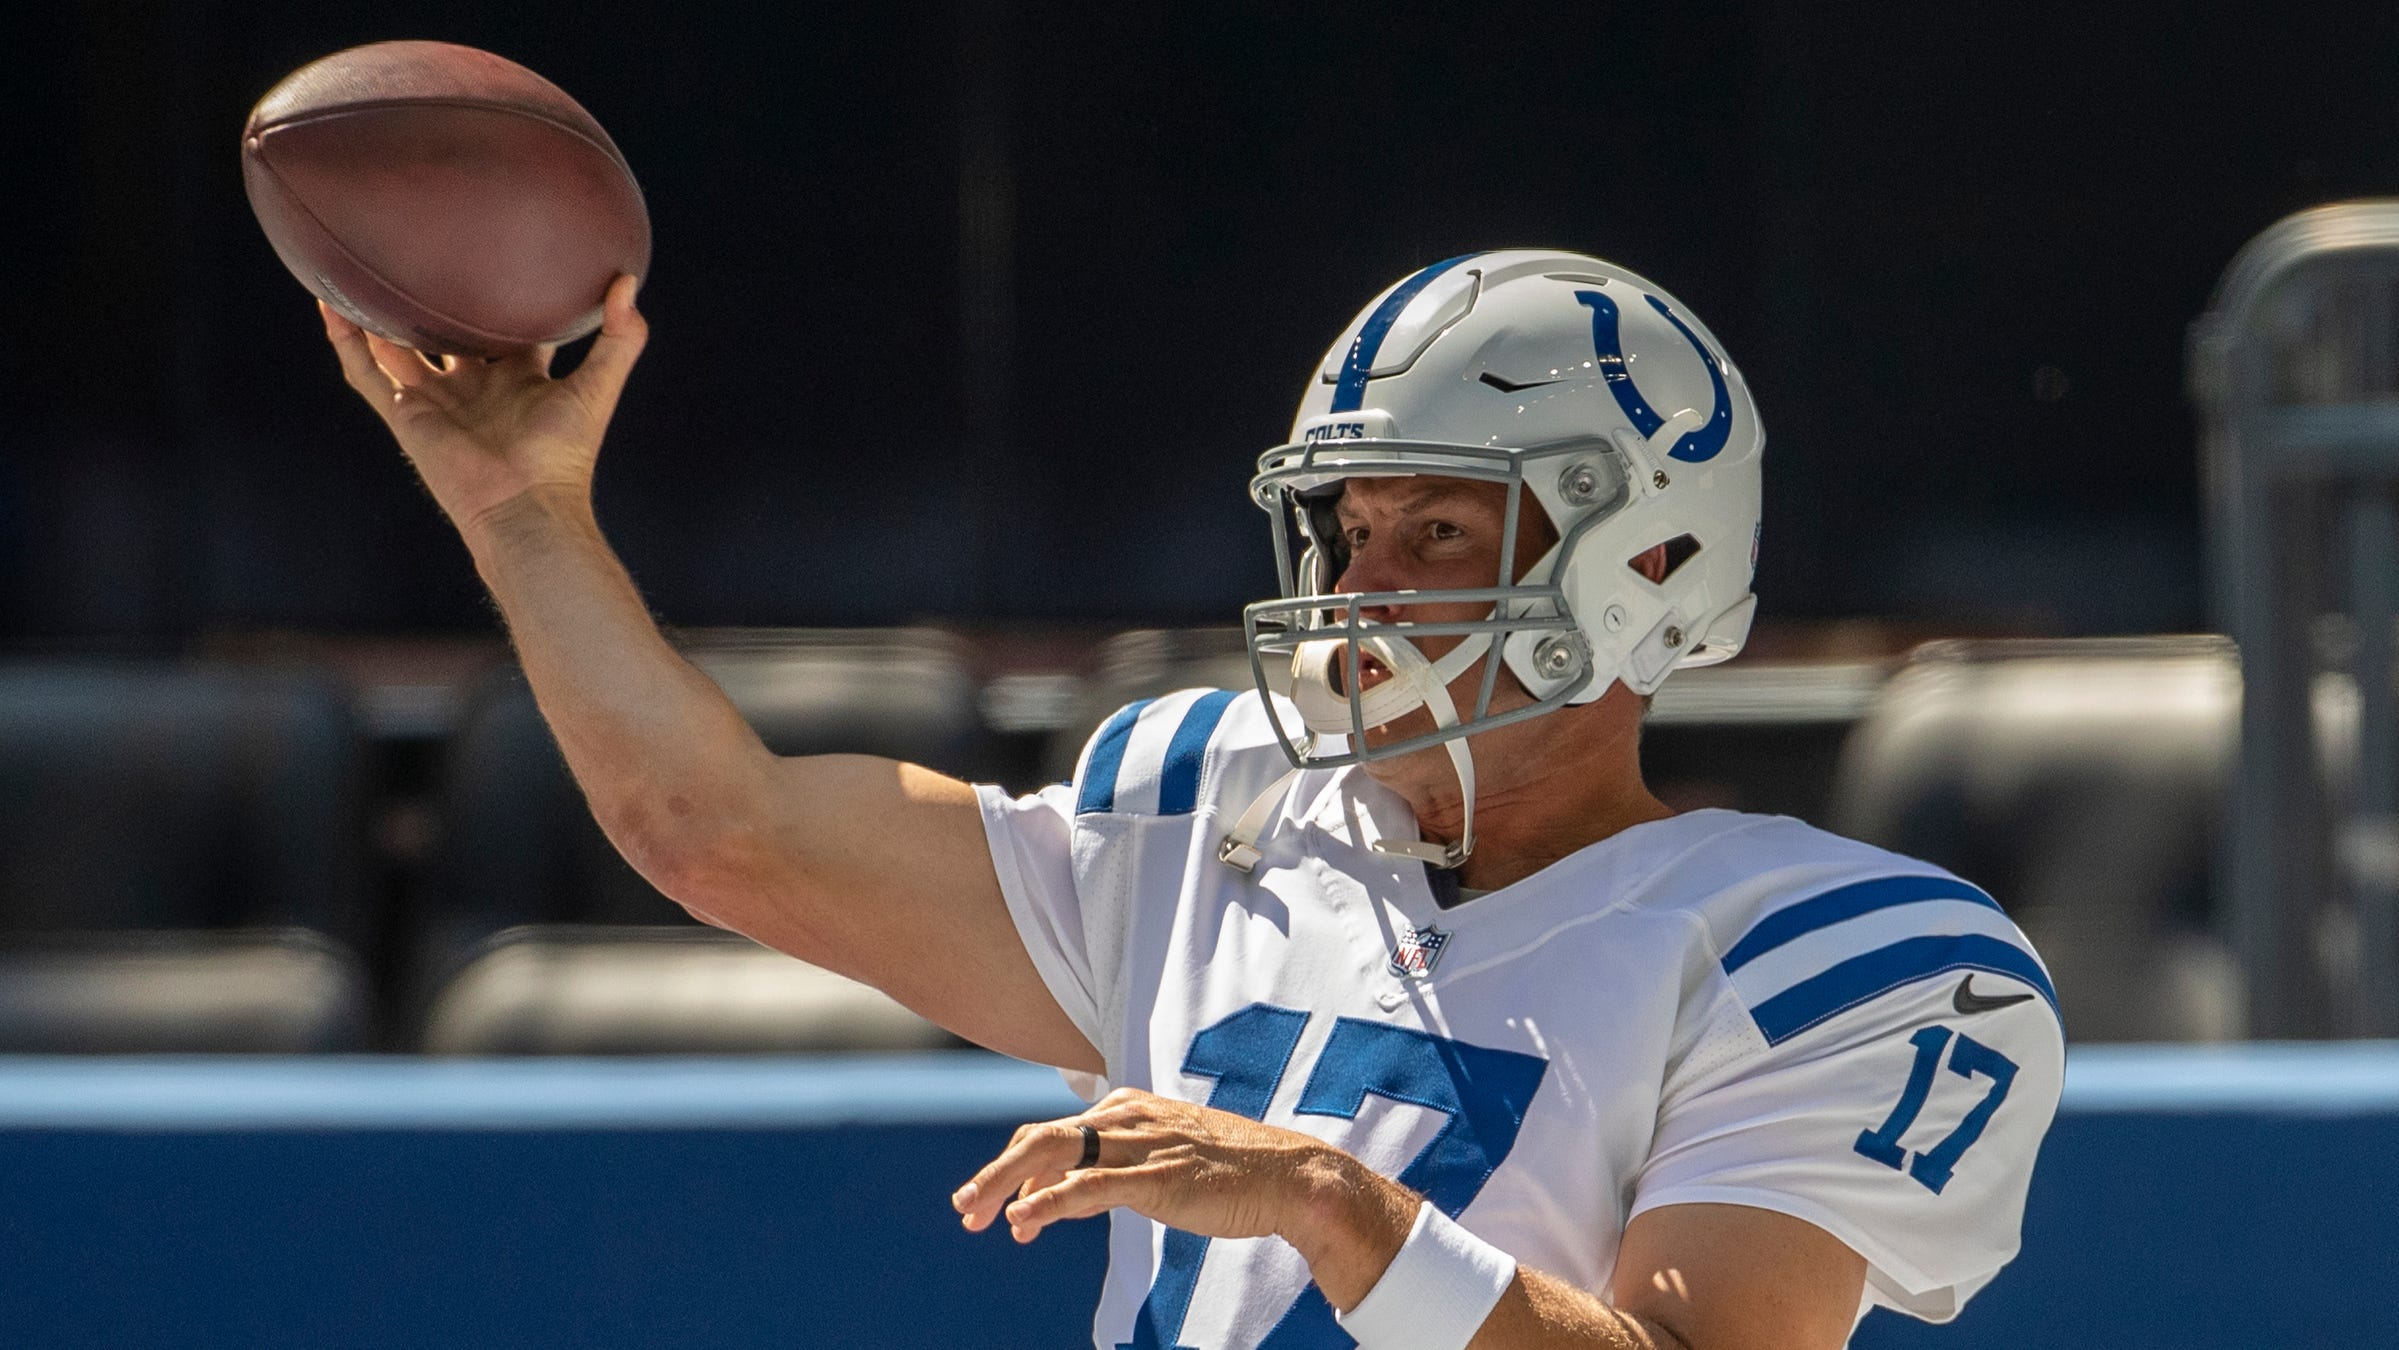 Colts fall in the first game 27-20 to division rival Jaguars